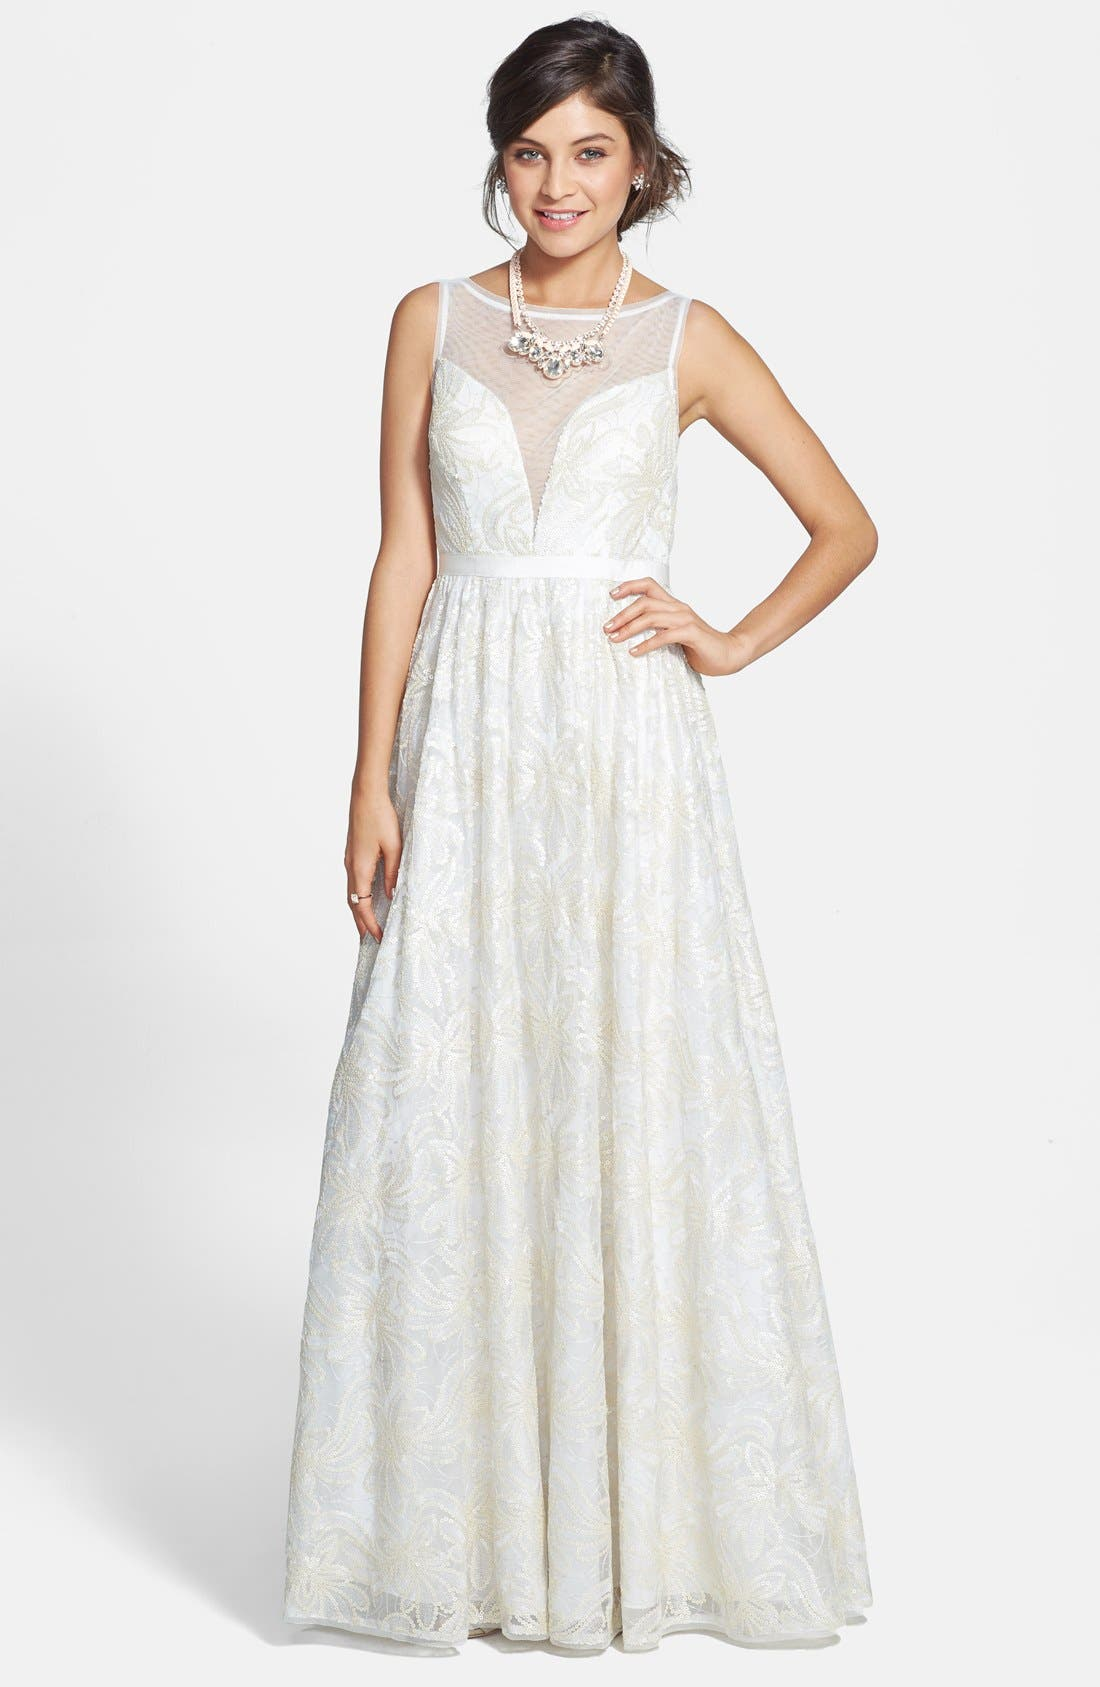 Main Image - Adrianna Papell Faux Leather Sequin Lace Gown